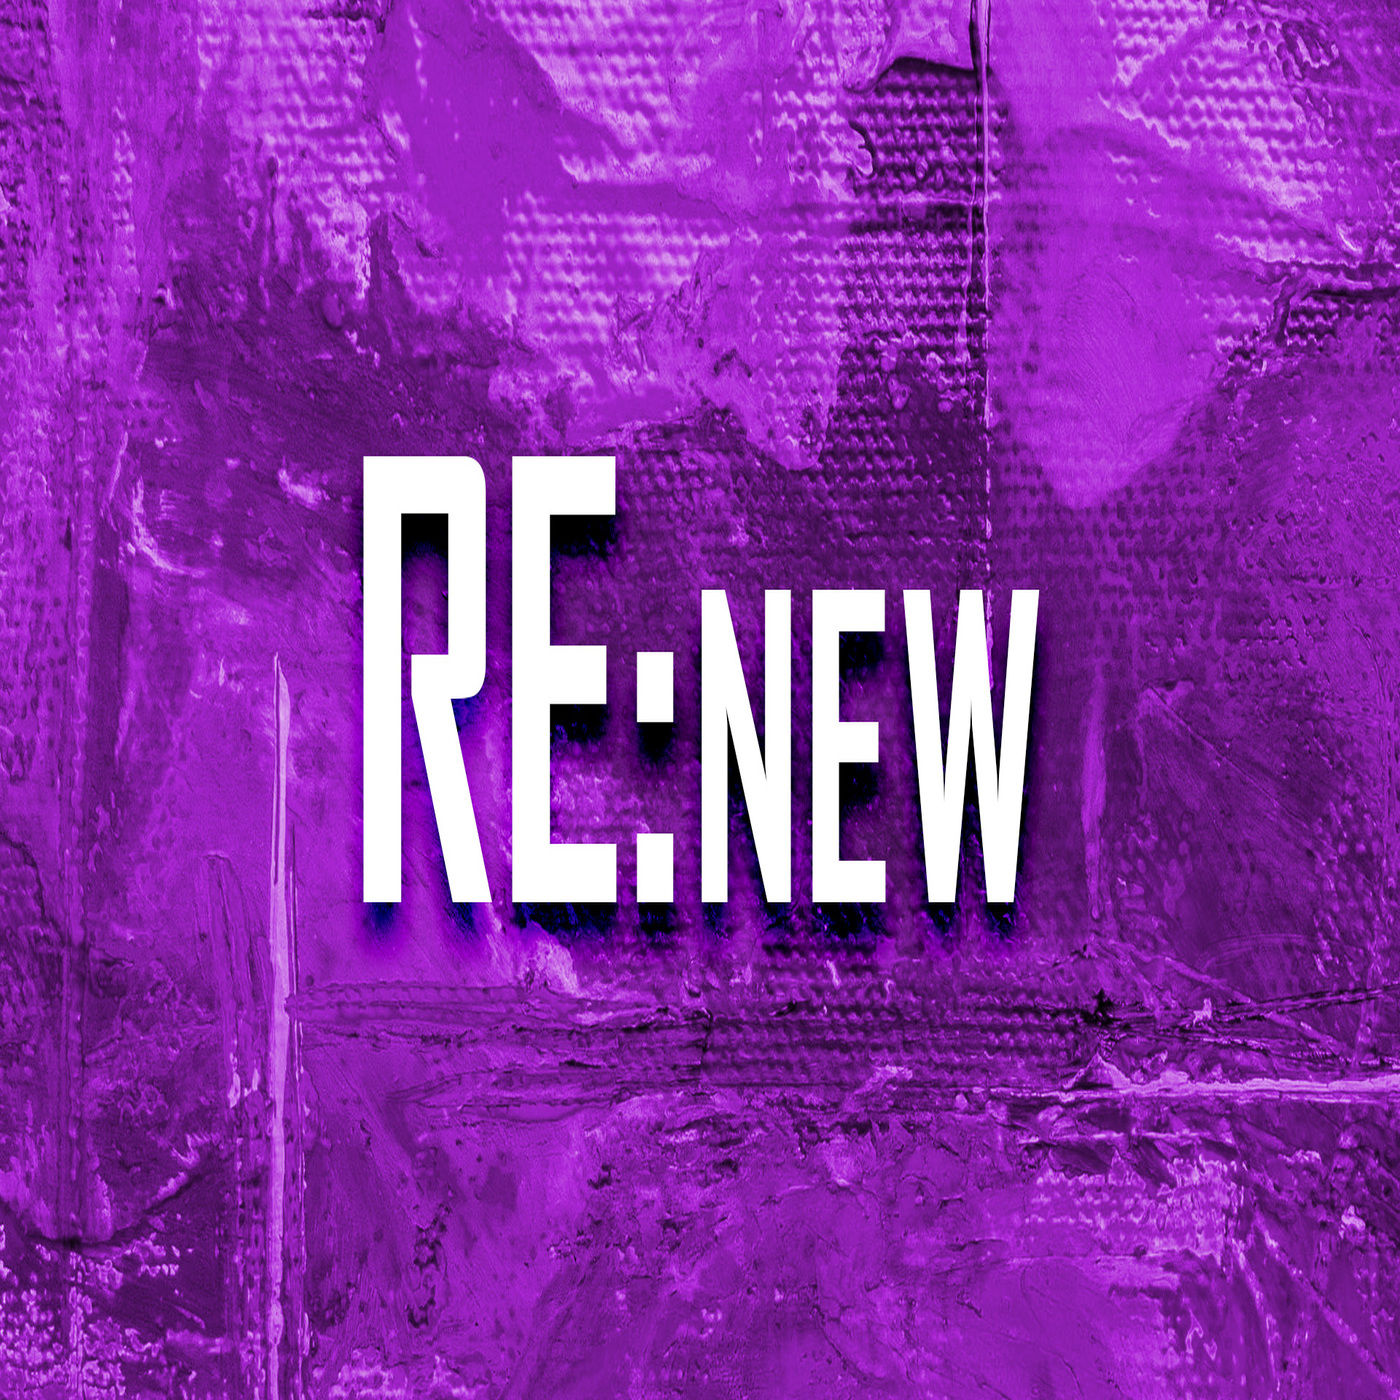 Re:New